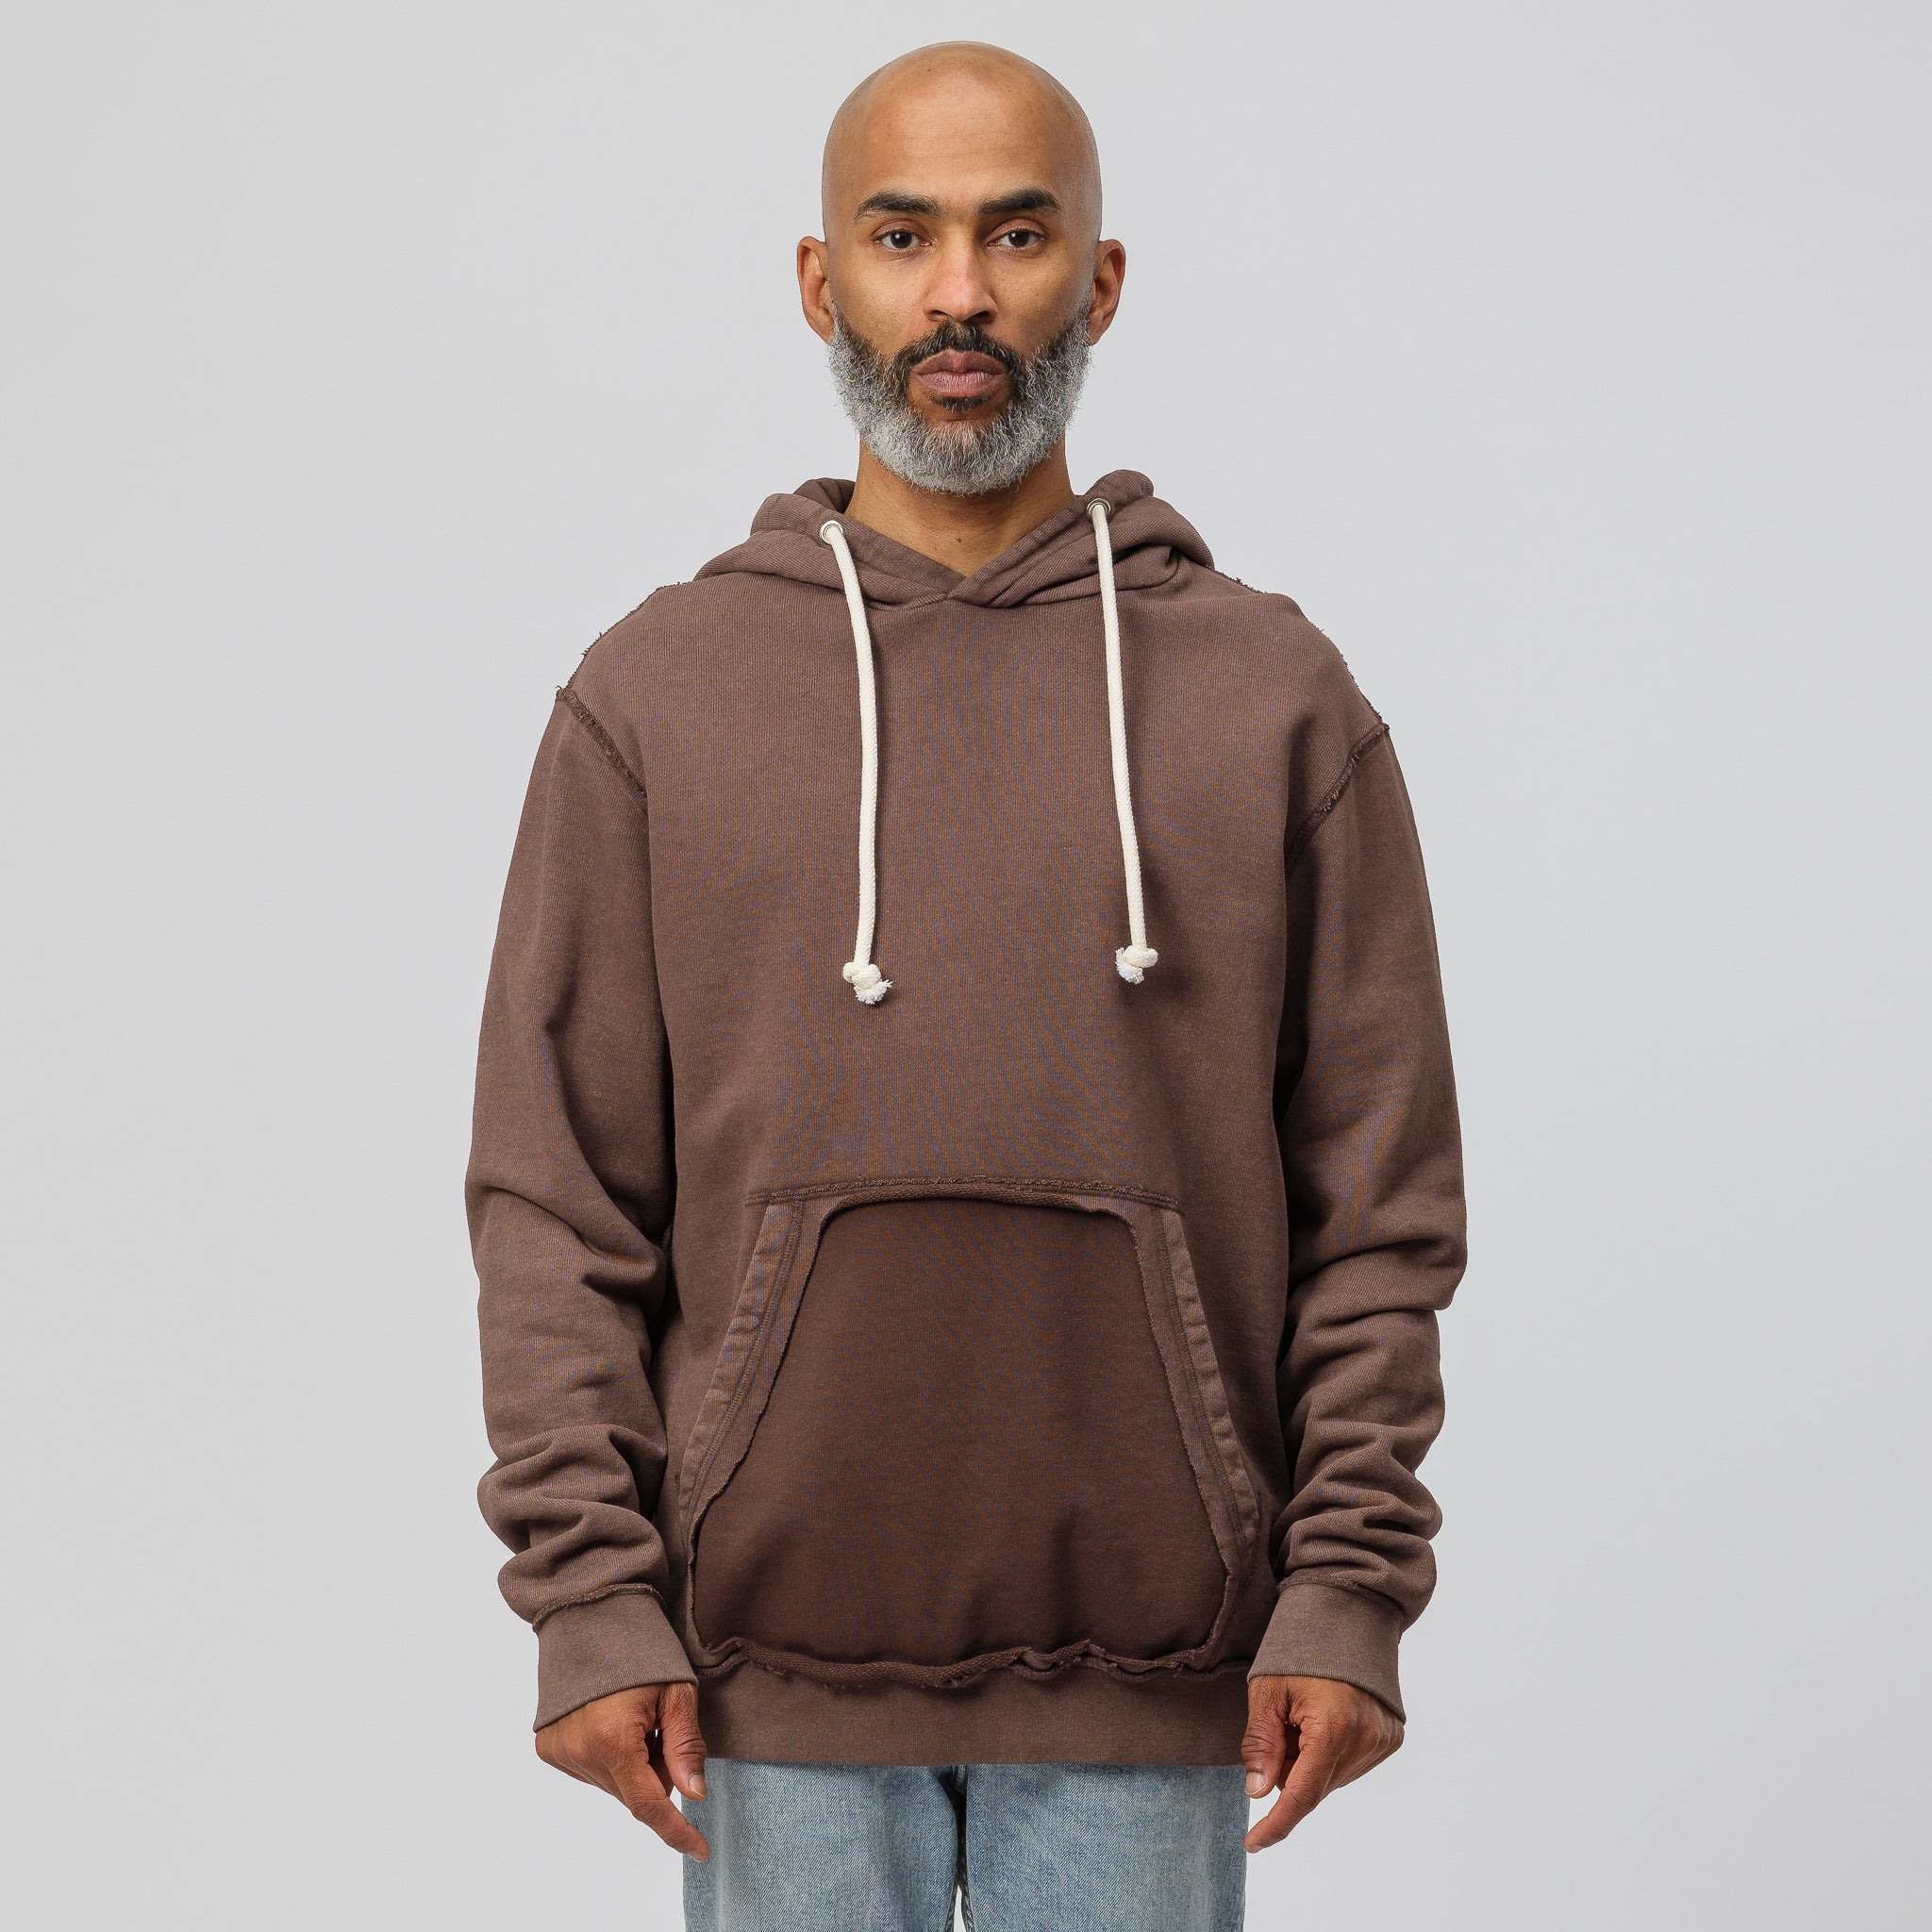 Hooded Sweatshirt in Brown